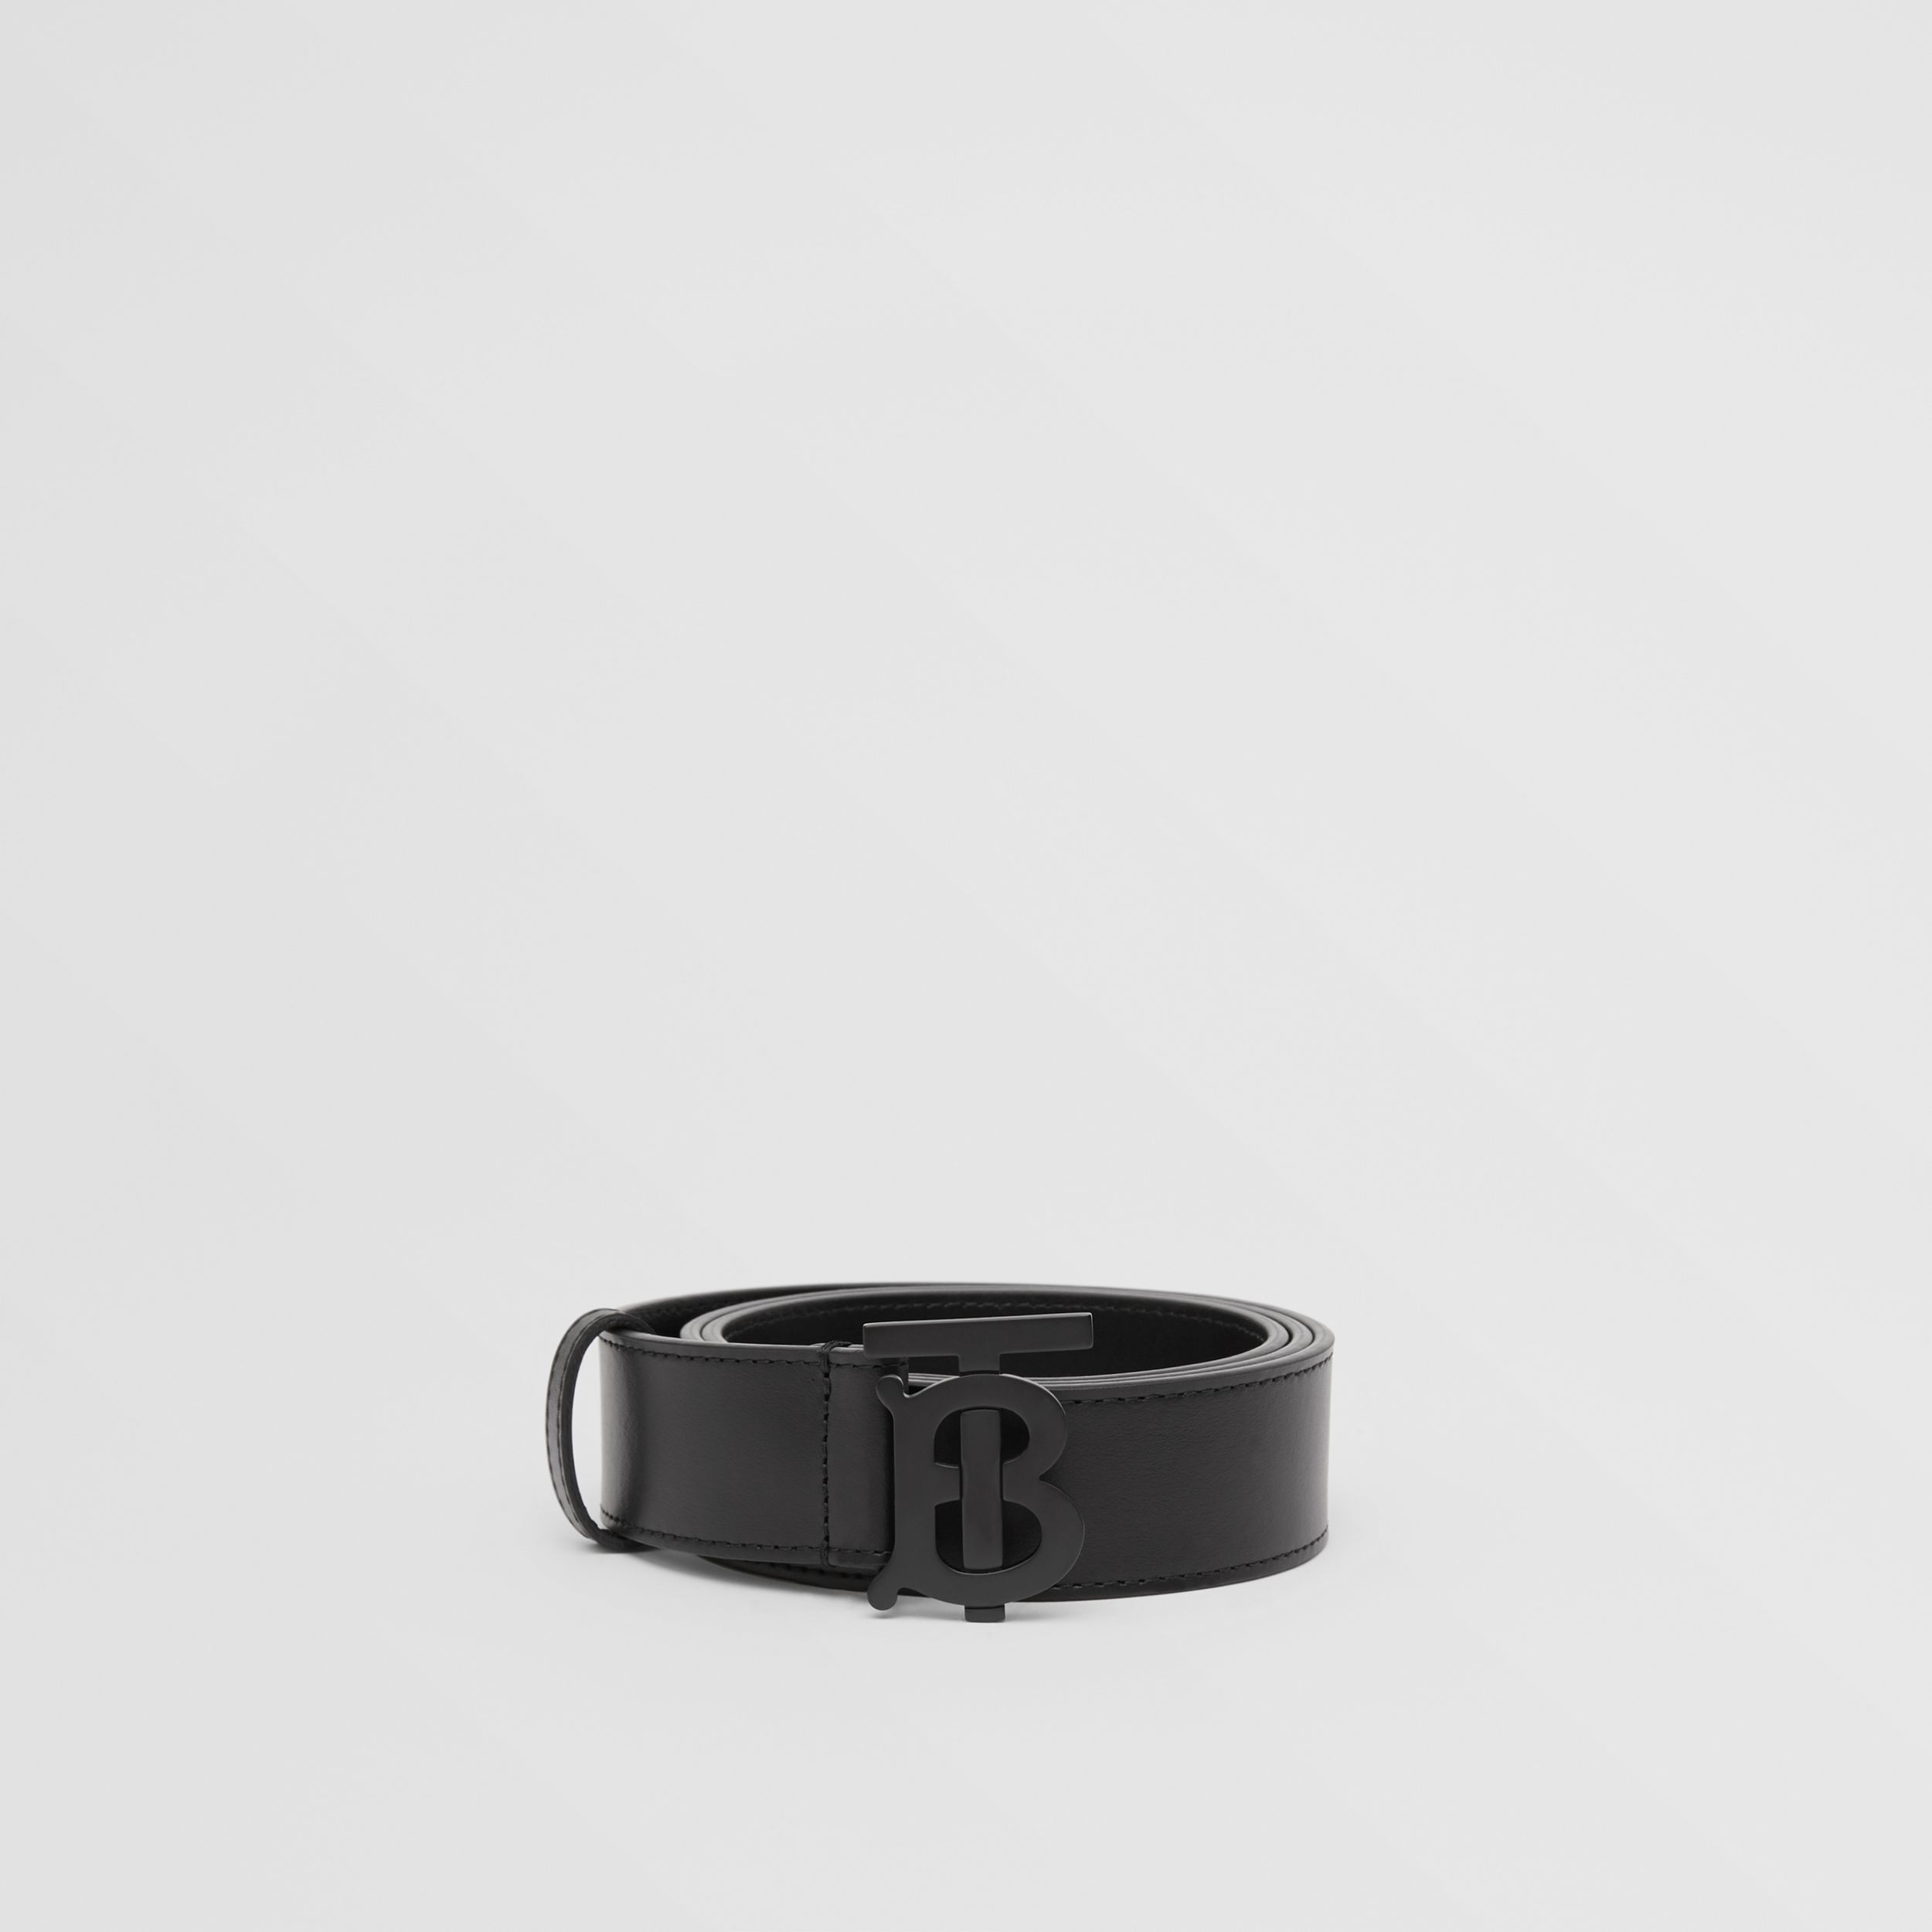 Matte Monogram Motif Leather Belt in Black - Men | Burberry - 4